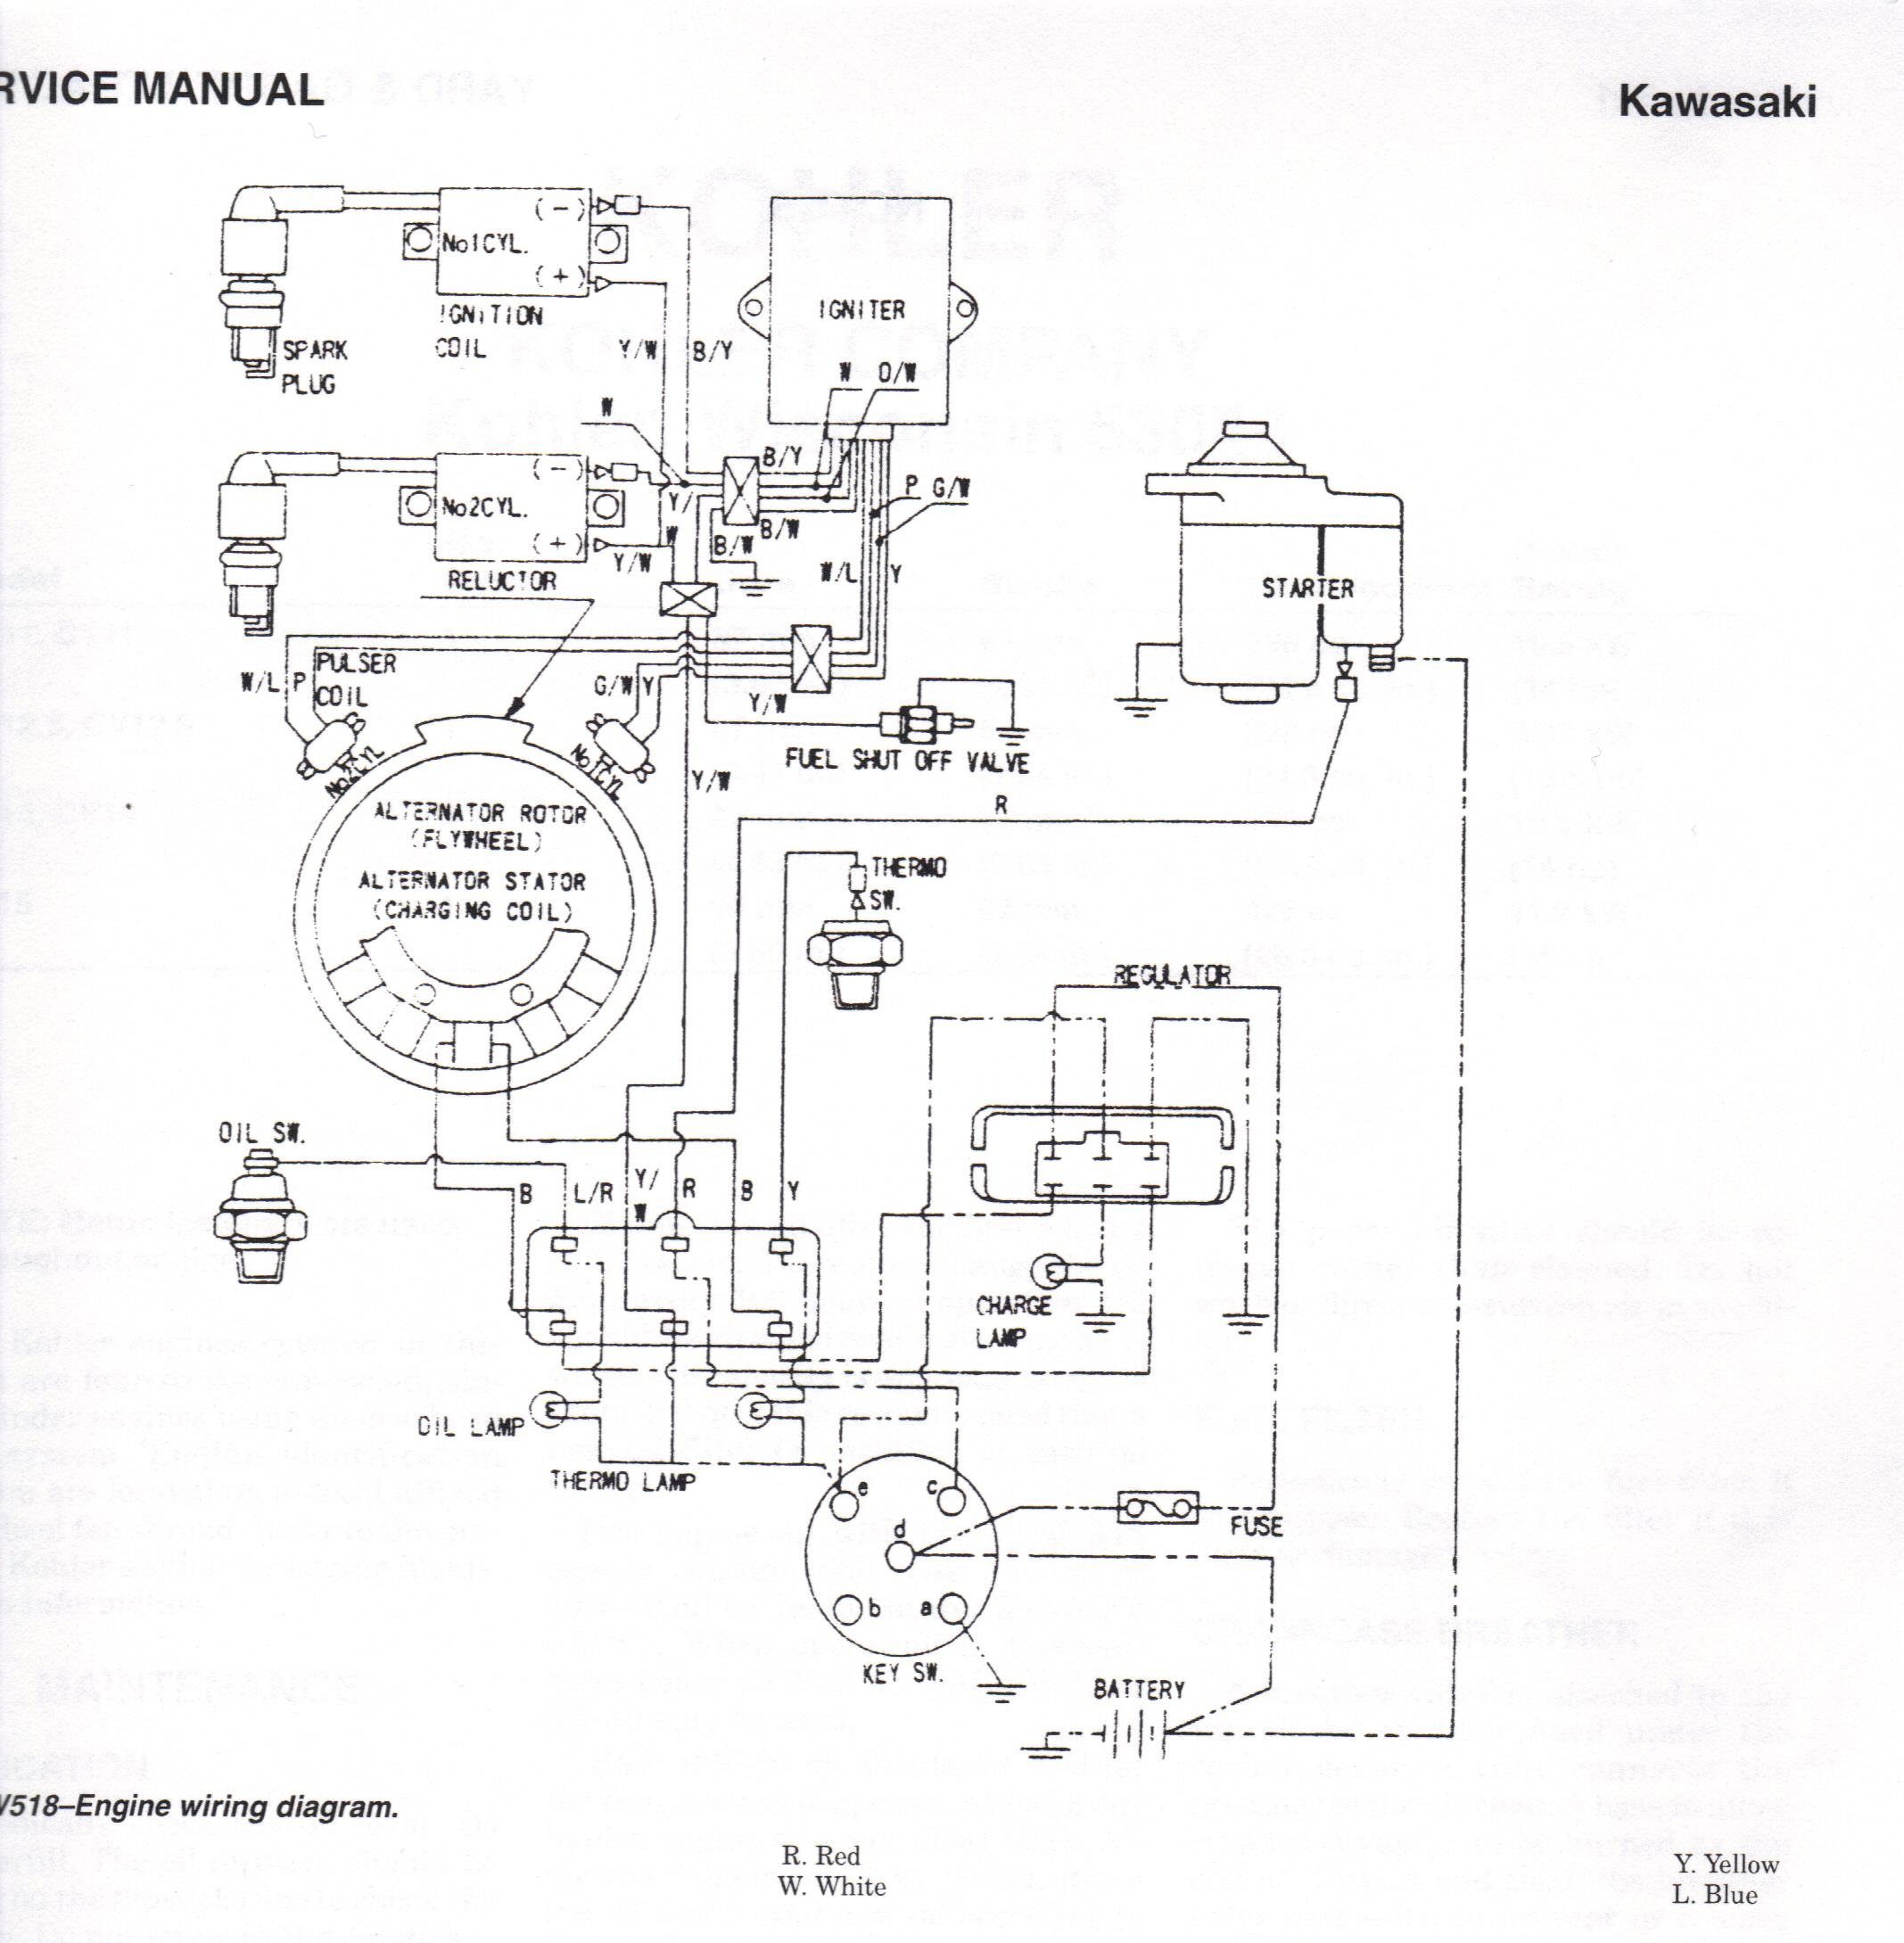 Bad Boy Buggy Ambush Wiring Diagram Small Engine Light Simple Guide About Deere Gx345 No Spark Printed Circuit Board Upper